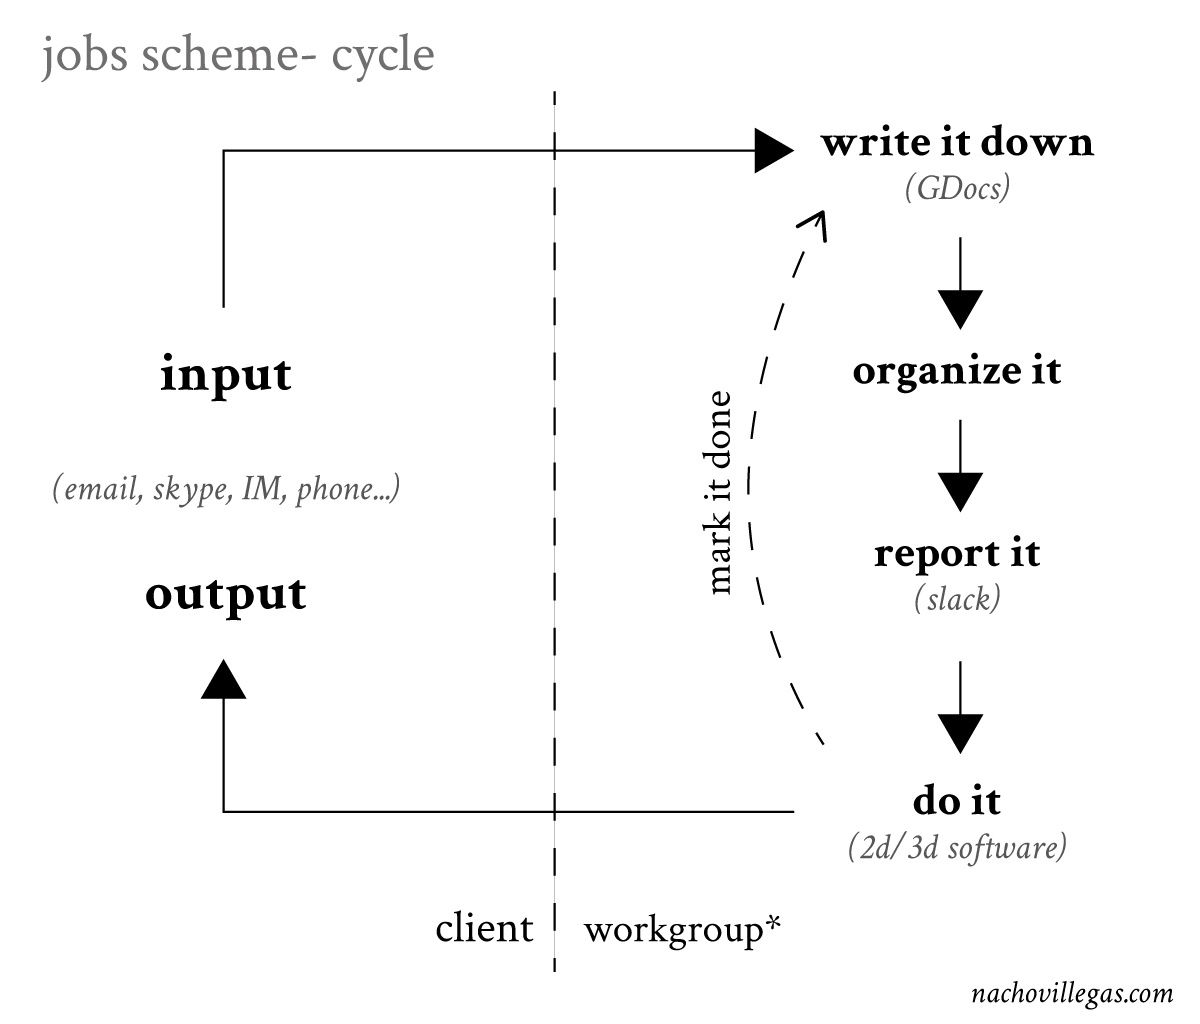 jobs-scheme-cycle